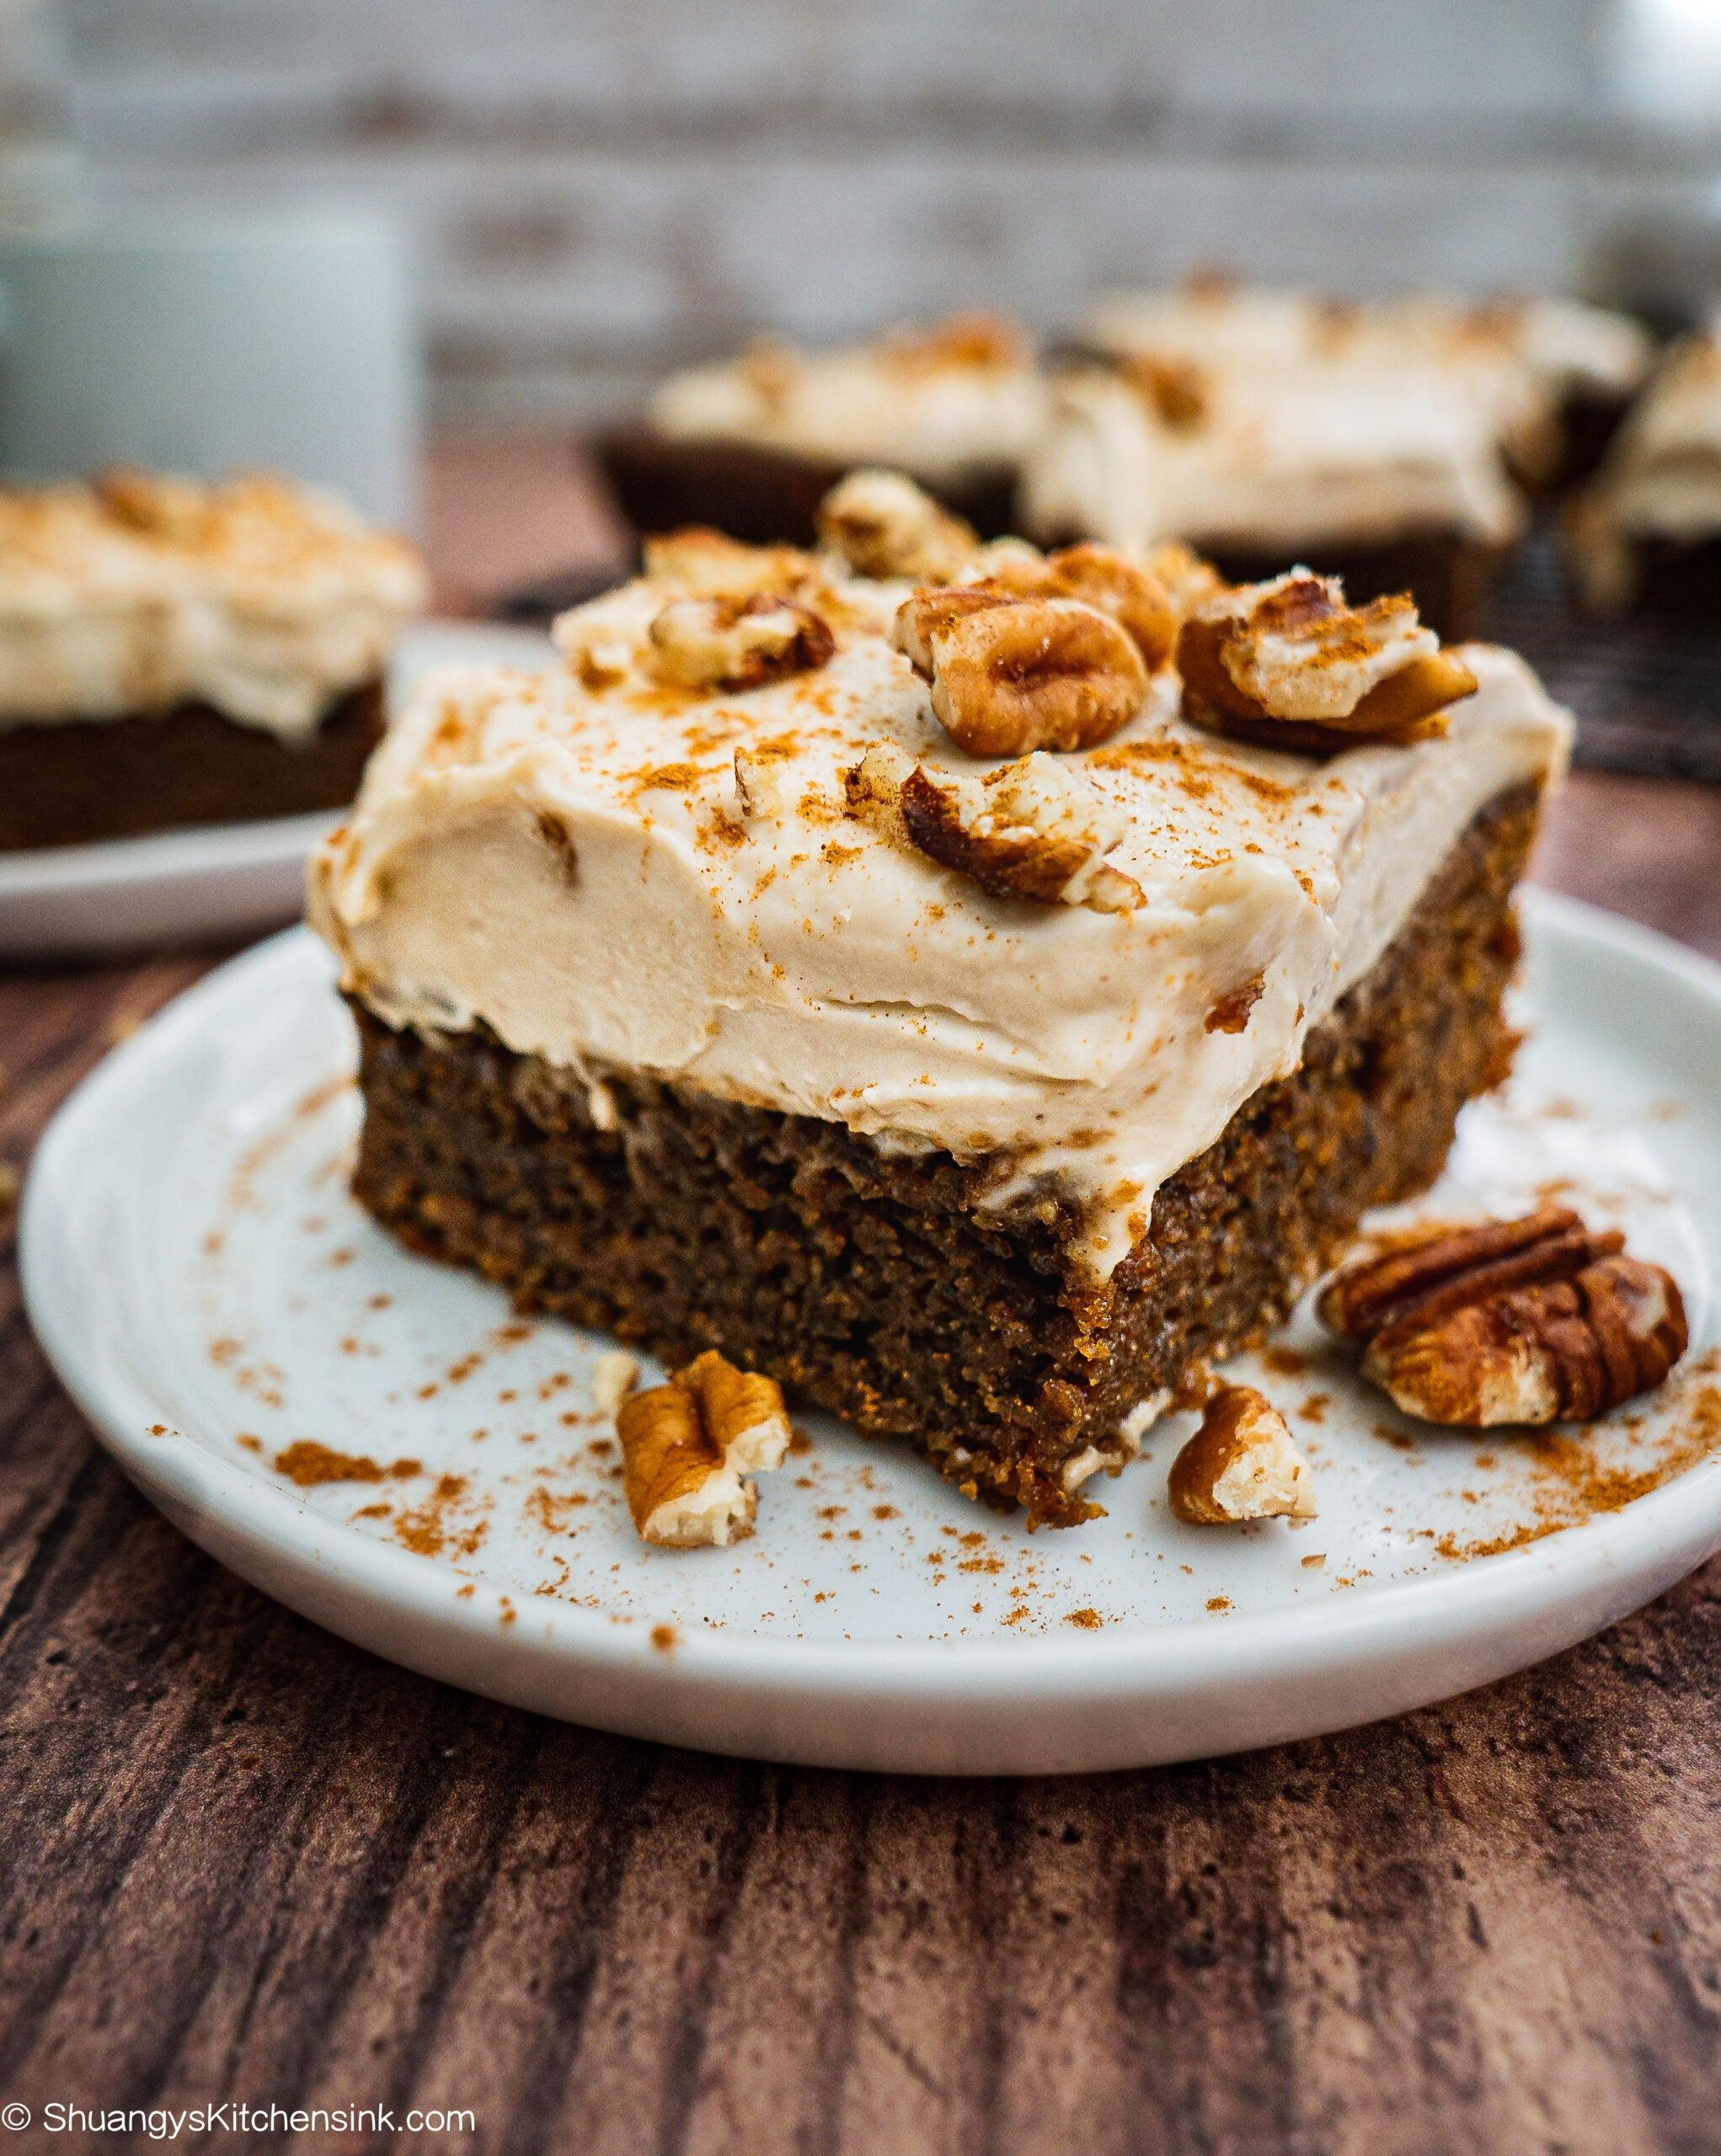 A piece of vegan gingerbread cake with cashew cream frosting and crumbled pecans on top. There are more gingerbread cake in the background.